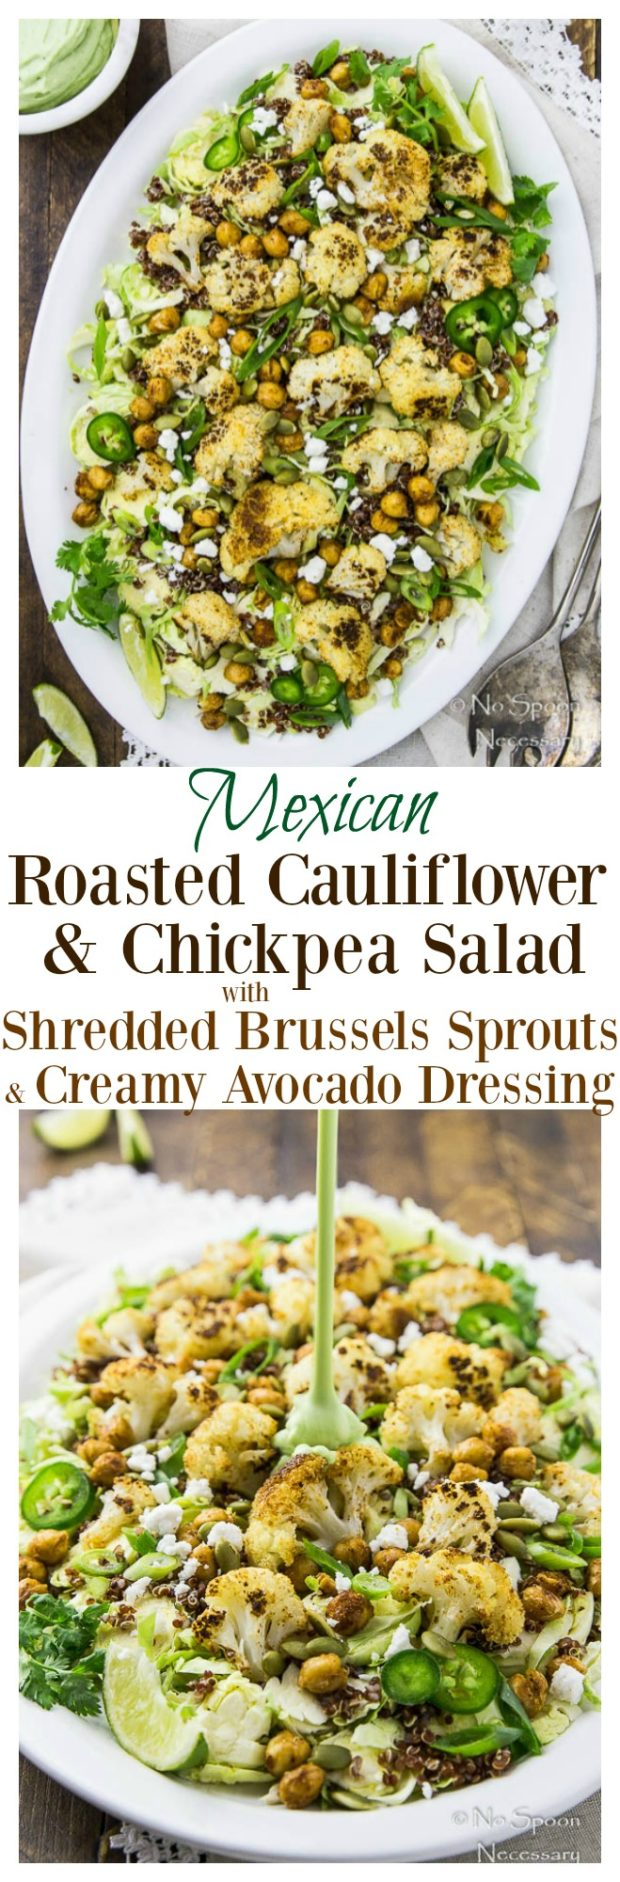 Mexican Roasted Cauliflower & Chickpea Salad with Shredded Brussels Sprouts & Creamy Avocado Dressing #Vegetarian #Healthy